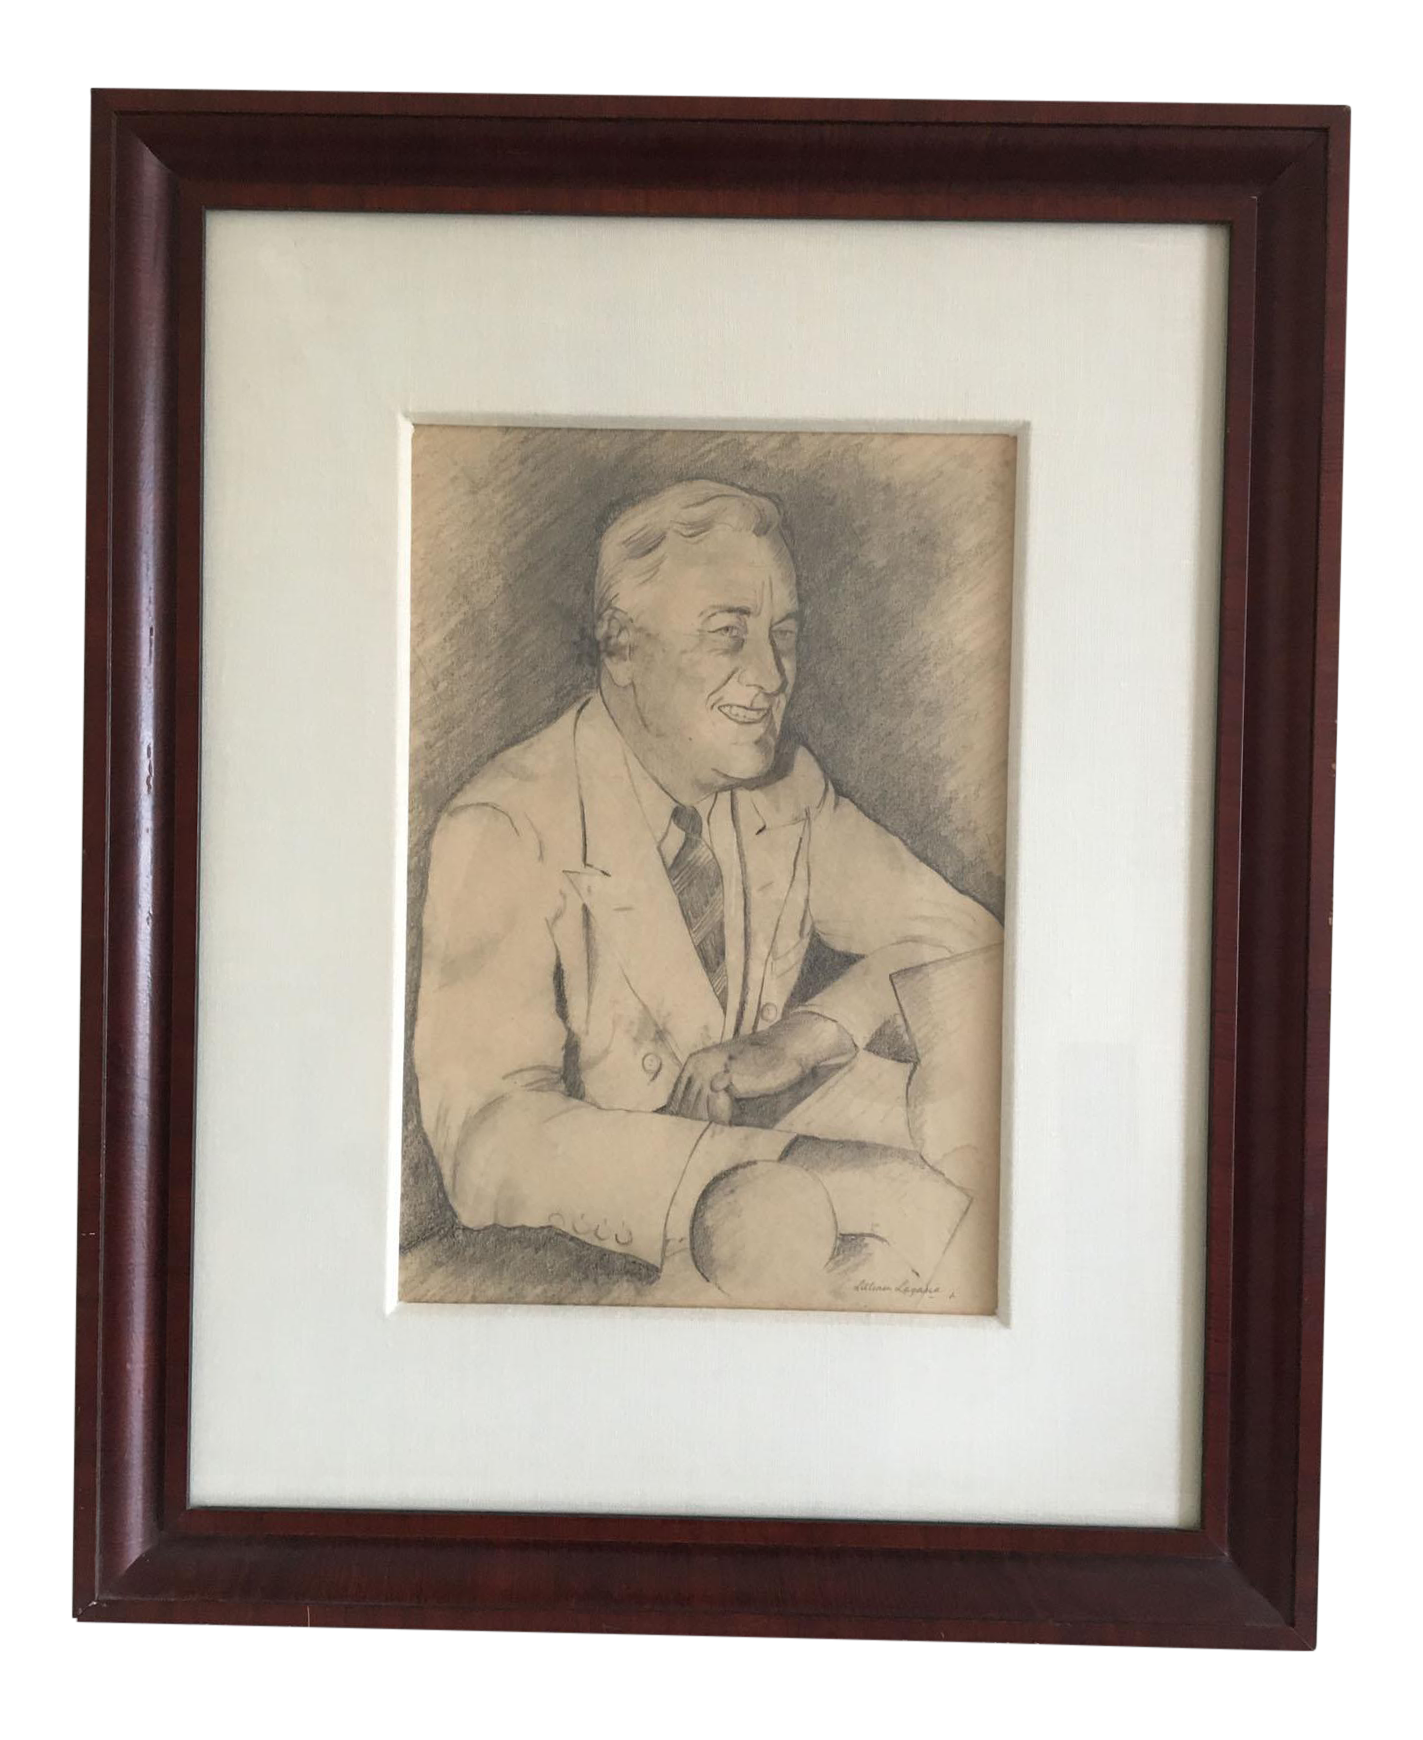 Fdr drawing painting. Our favorvite prez f